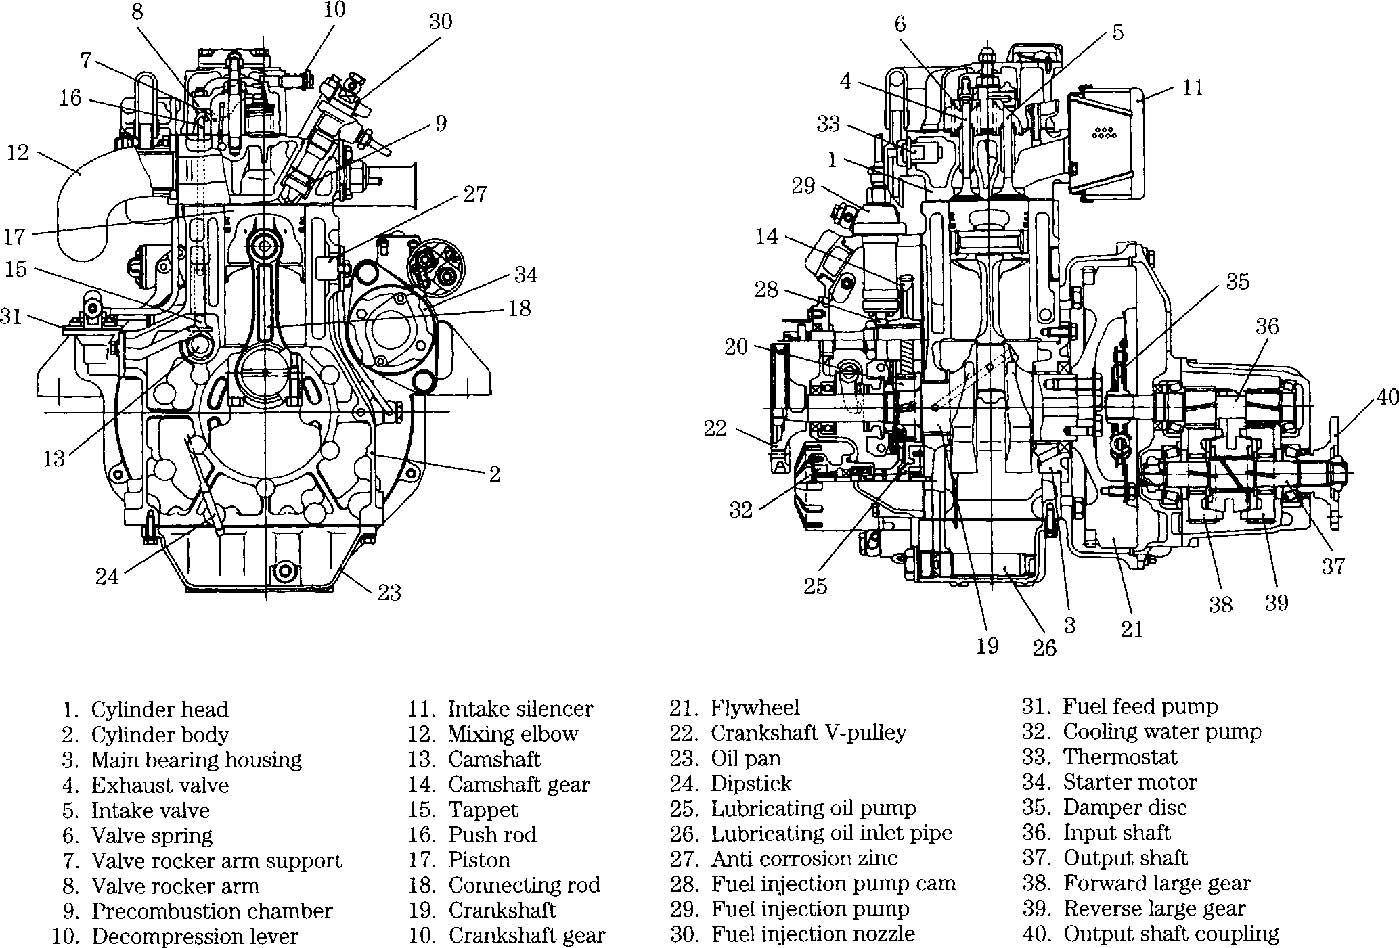 4 3l V6 Vortec Engine Block Diagram | Wiring Liry V Engines Diagram With Names on